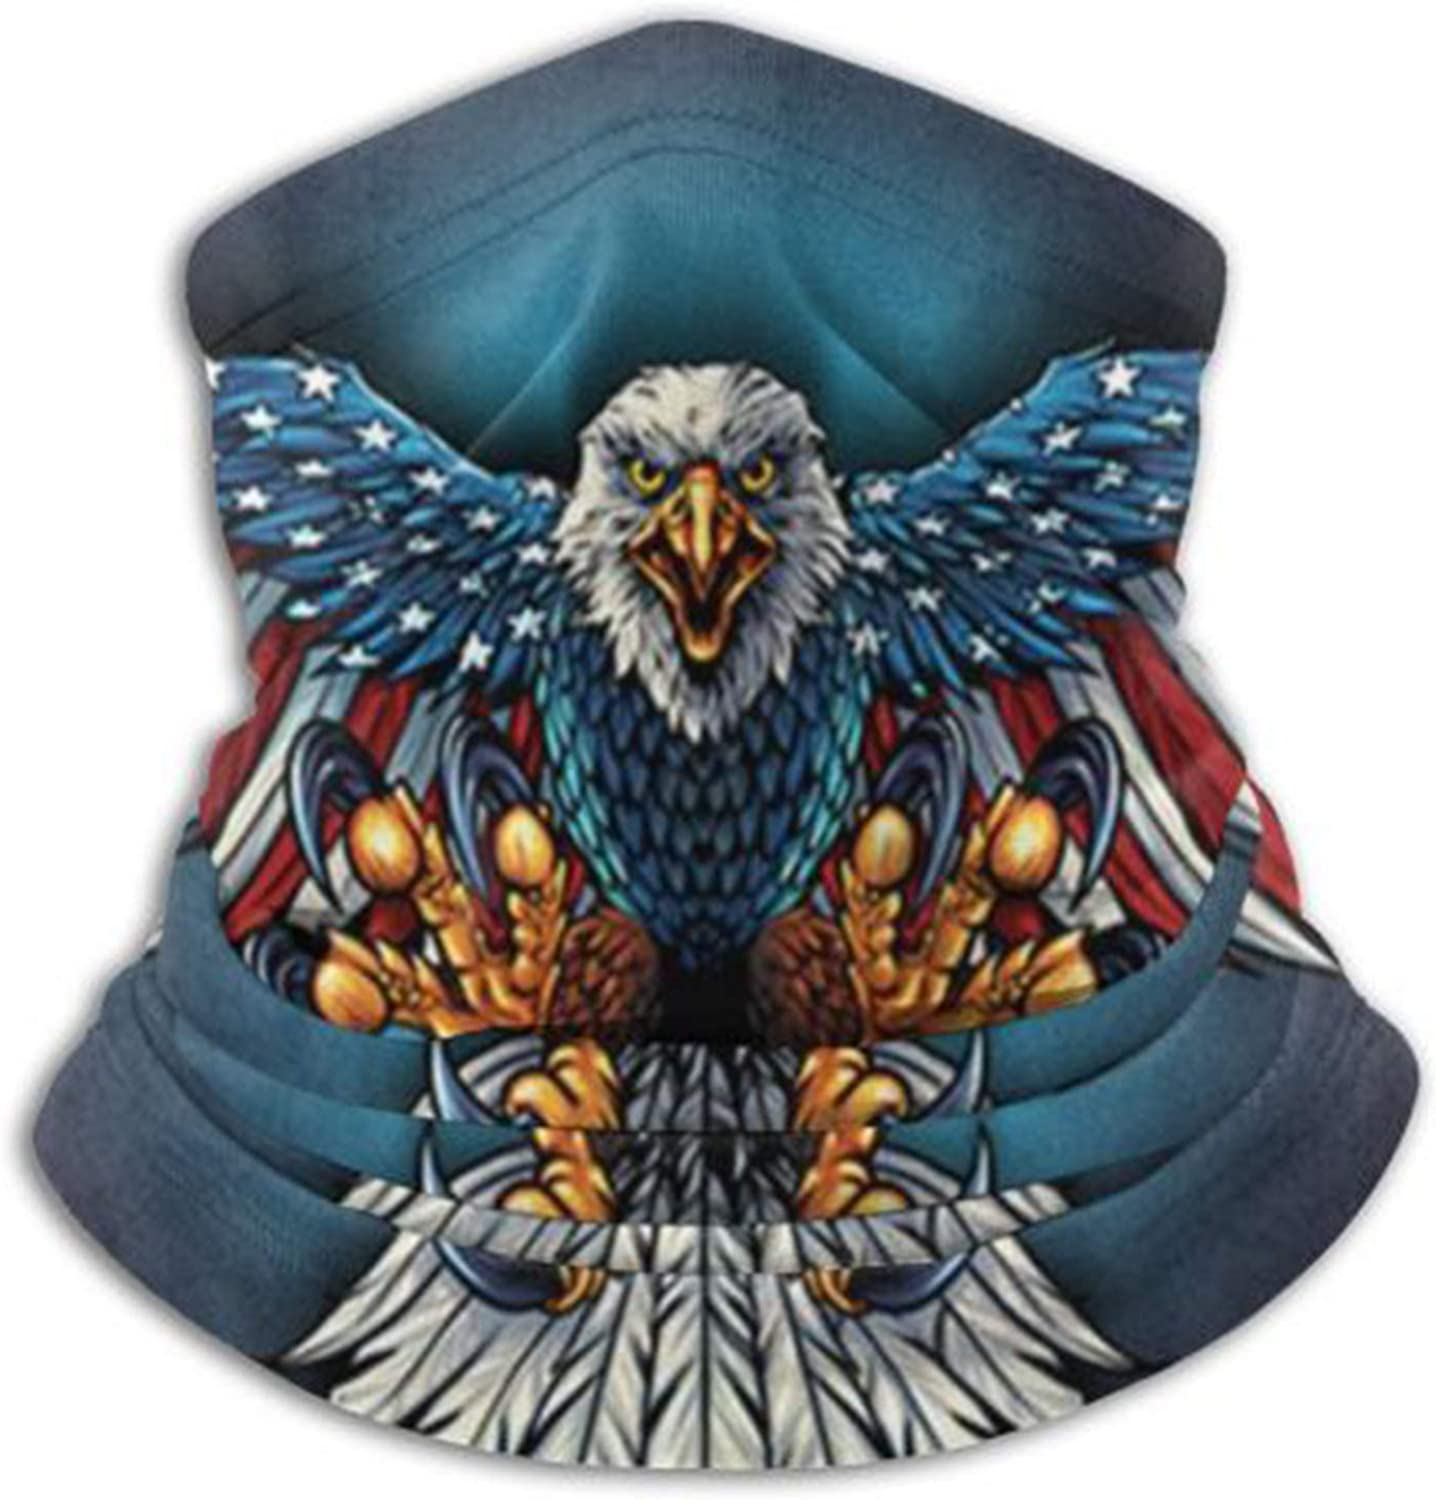 Eagle Fly American Flag Neck Gaiter Headwear Headband Head Wrap Scarf Mask Warmers Headbands Perfect For Winter Fishing, Hiking, Running, Daily Wear For Men And Women